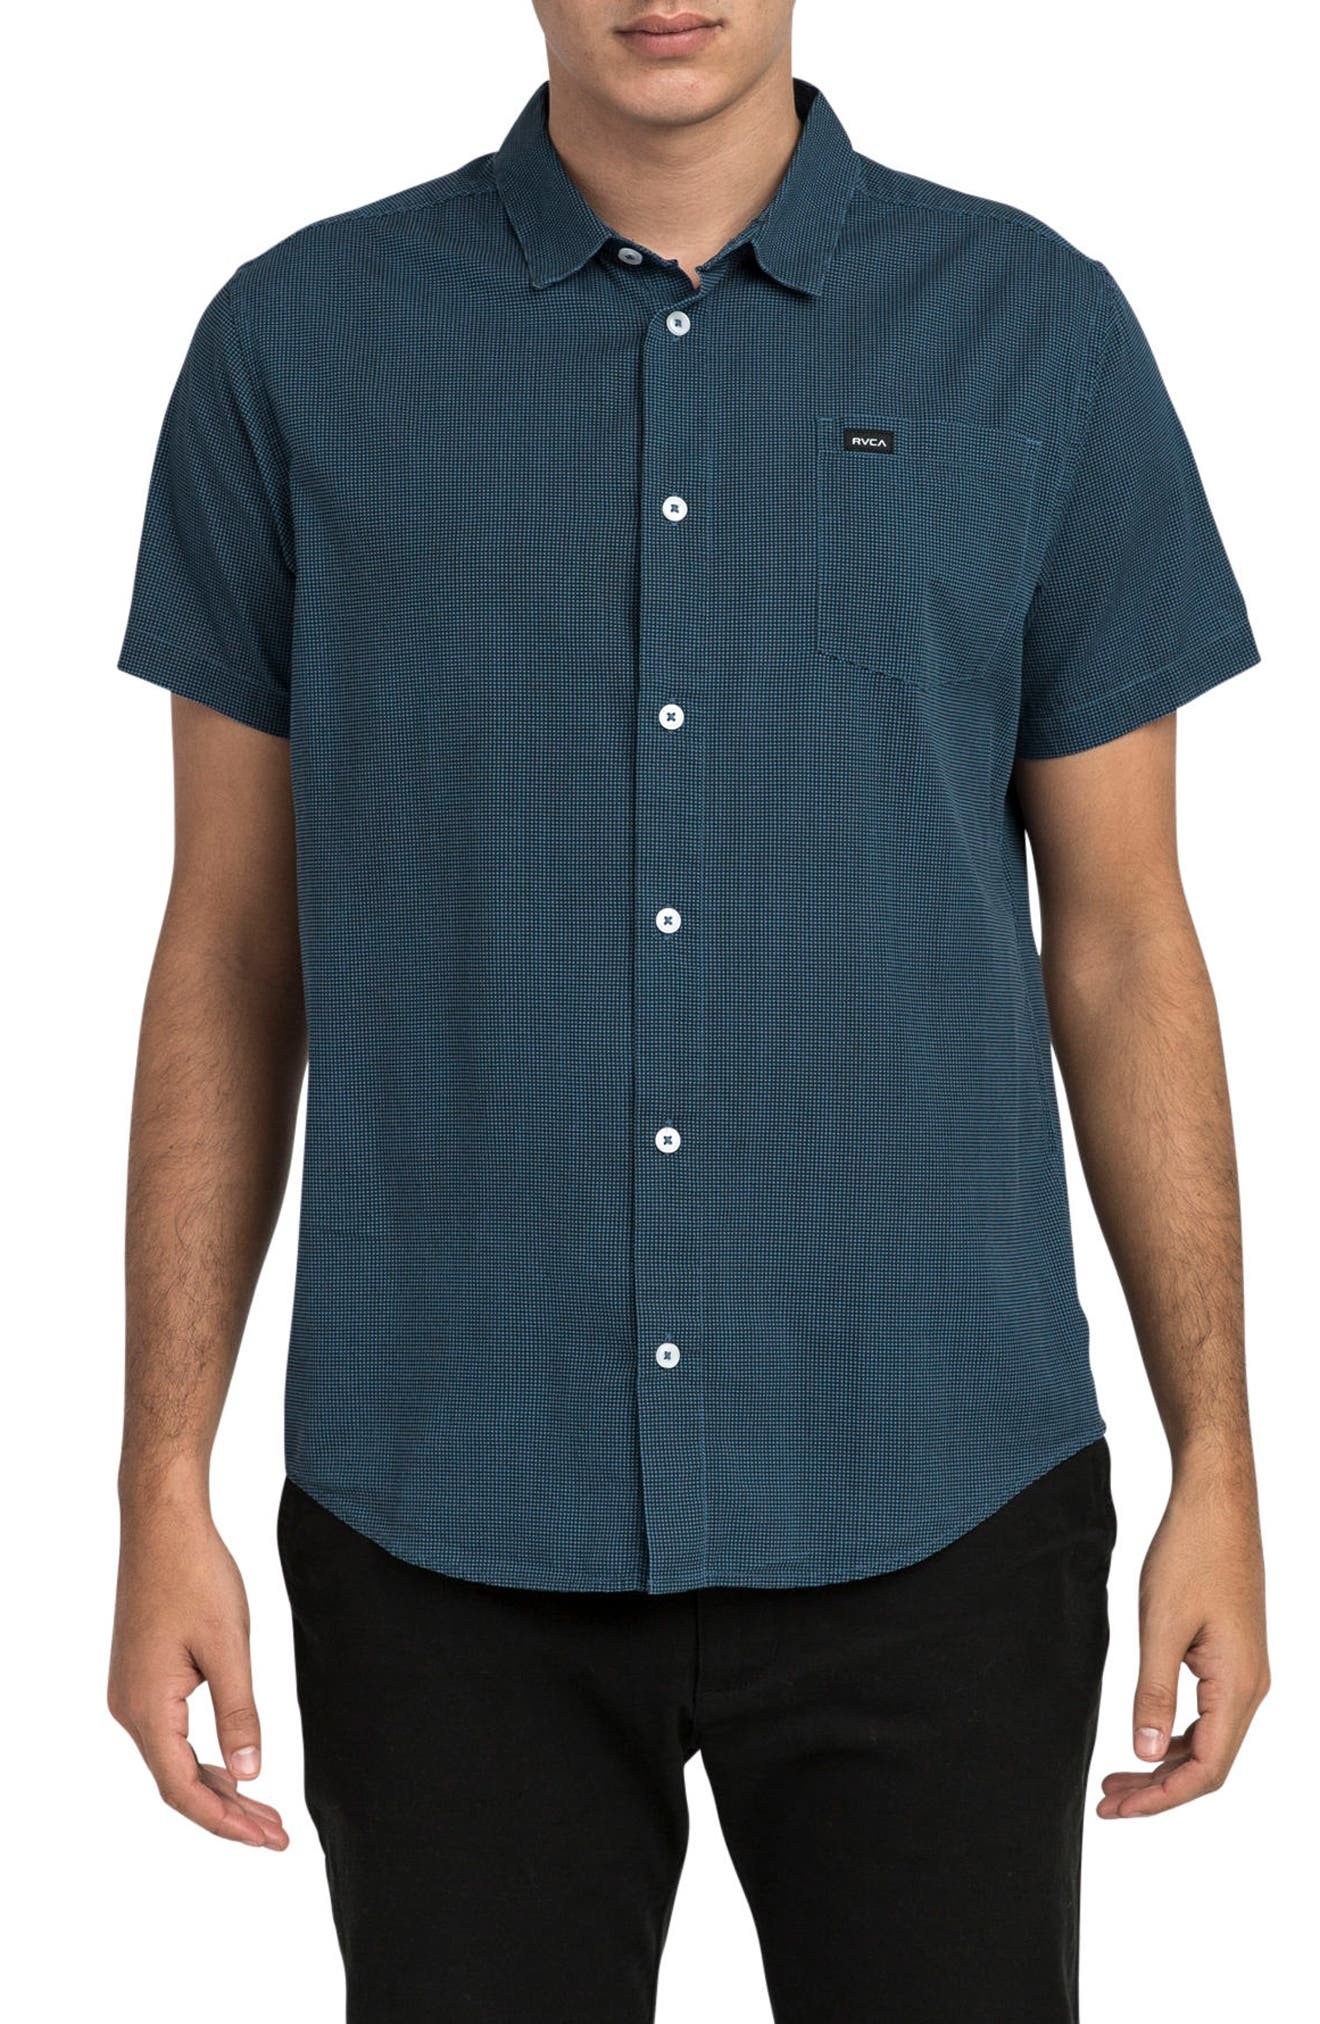 No Name Woven Shirt,                         Main,                         color, 400